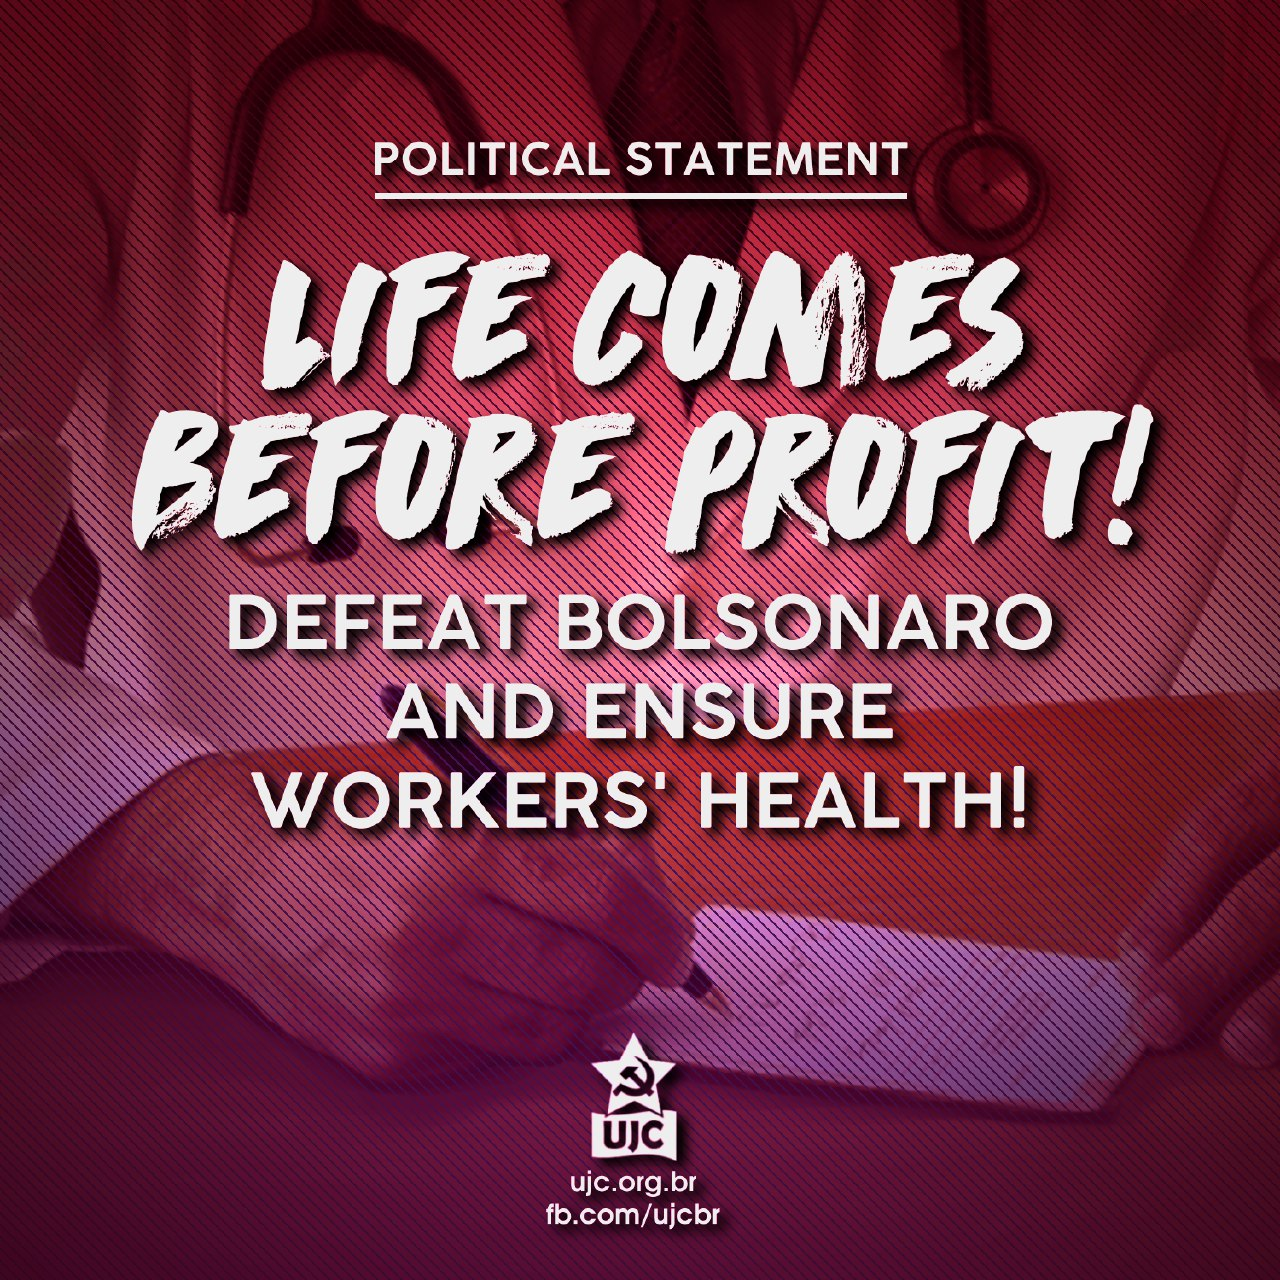 LIFE COMES BEFORE PROFIT! DEFEAT BOLSONARO AND ENSURE WORKERS' HEALTH!